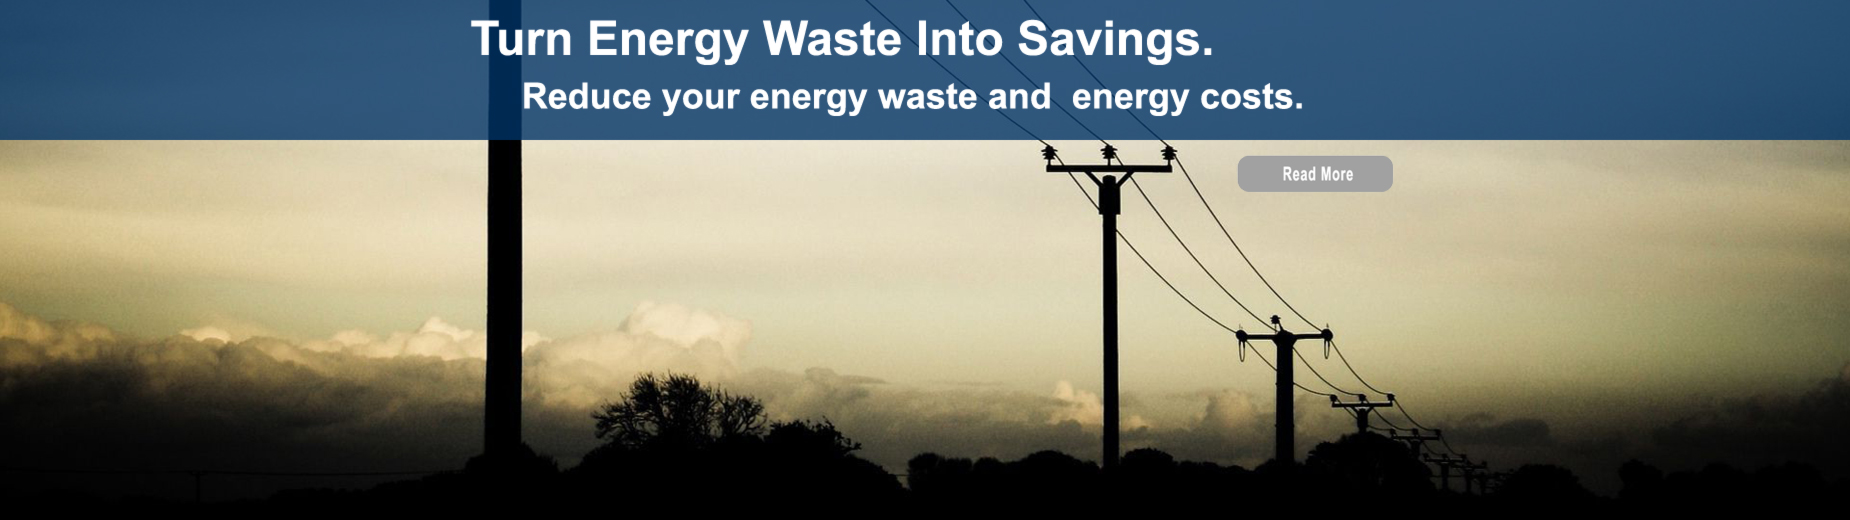 Read more about Turning Your Energy Waste Into Savings.